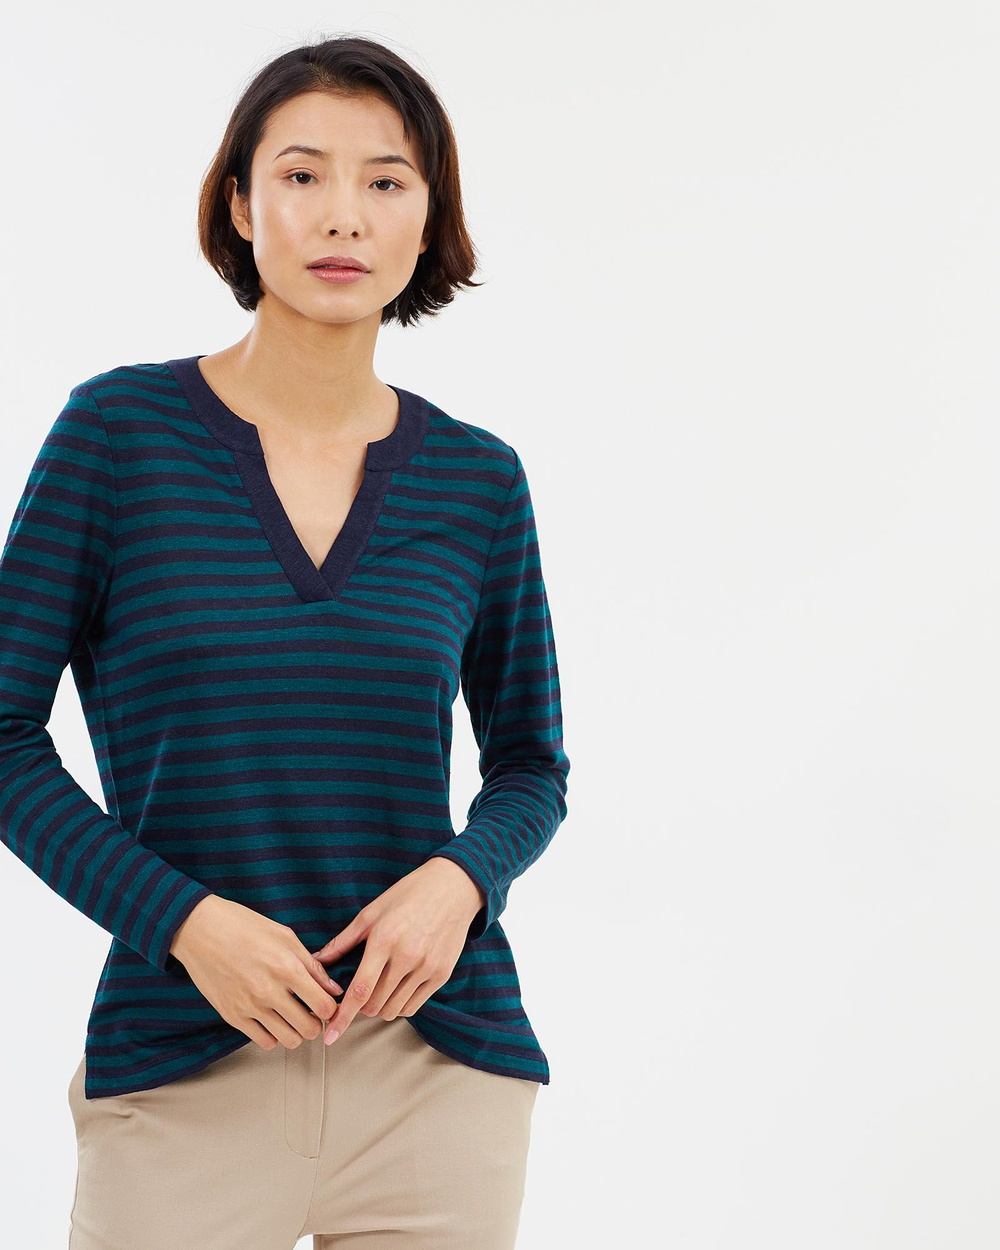 Sportscraft Maxwell Stripe Top Tops blue Maxwell Stripe Top